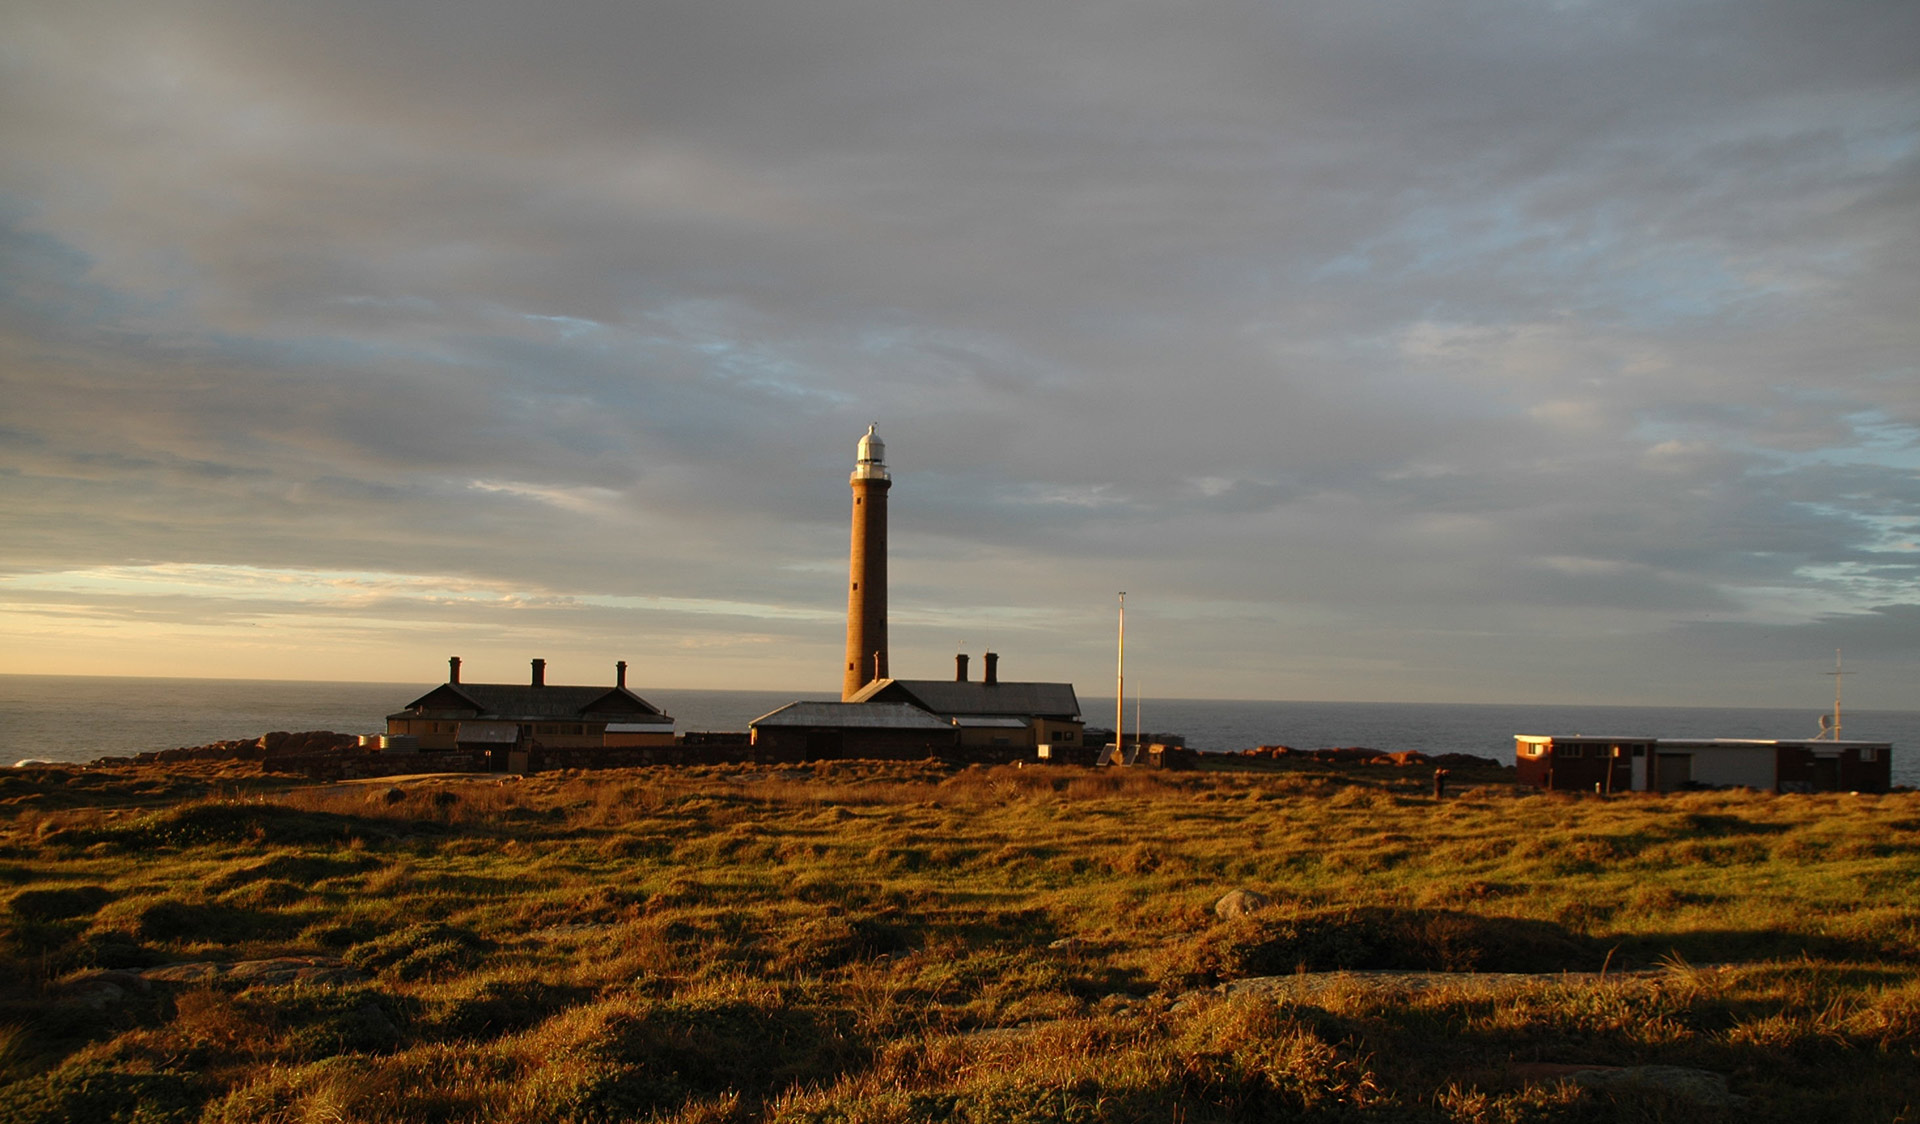 Gabo Island Lighthouse at sunset.